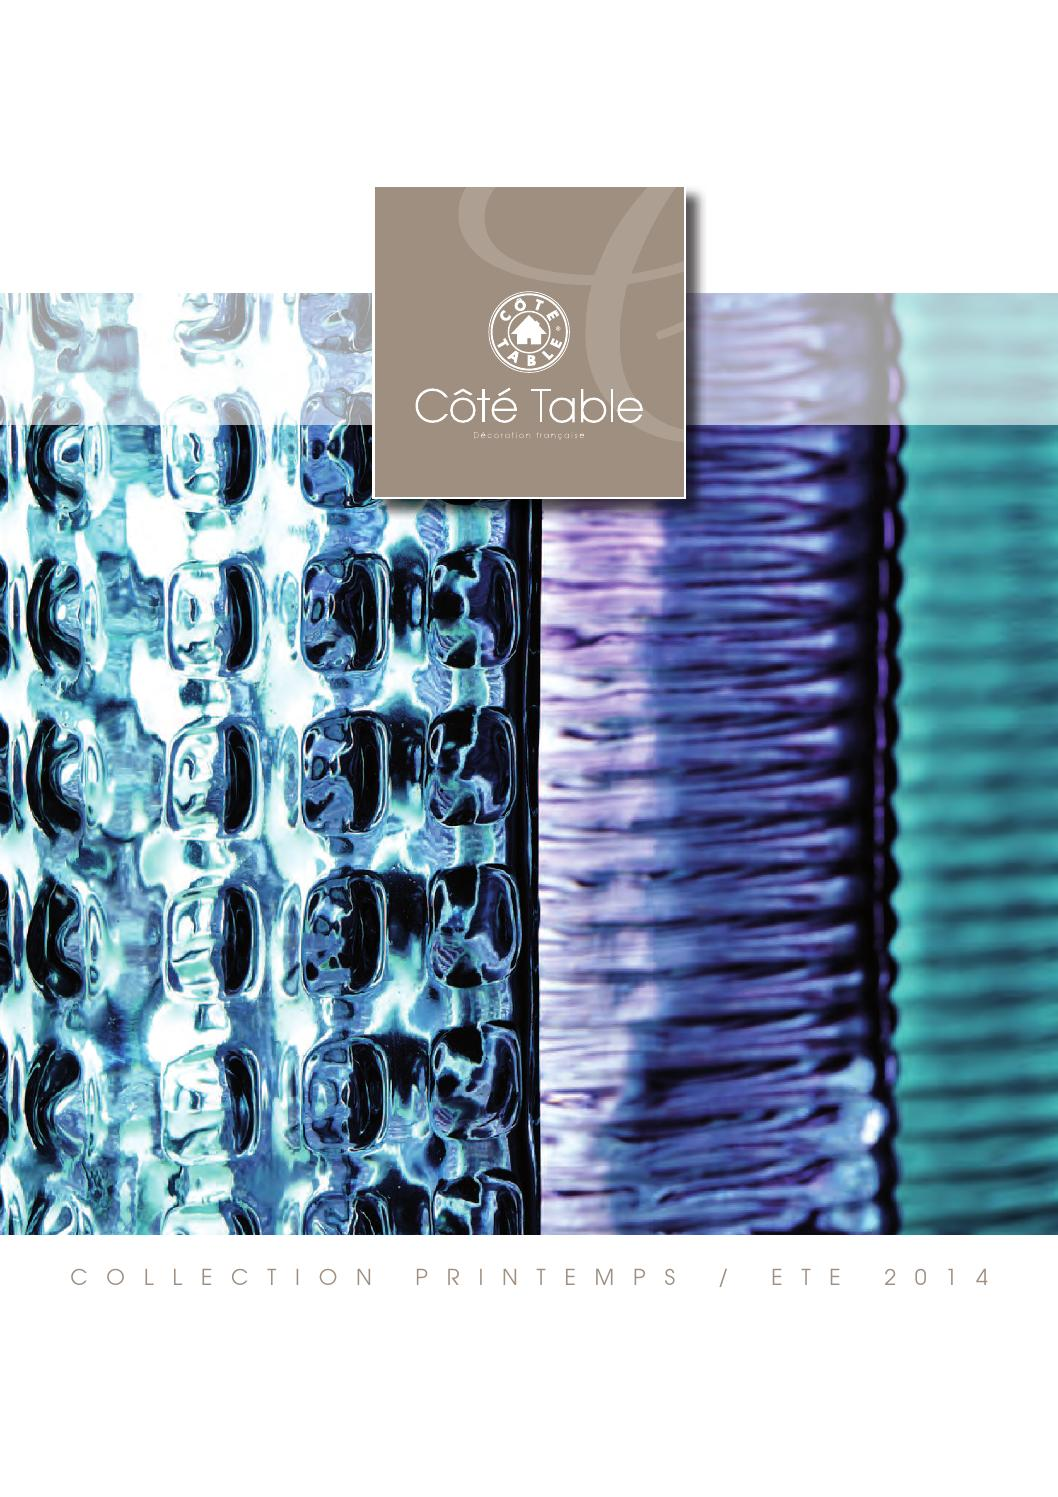 Cote Table Catalogue Catalog Côté Table 2014 Janvier By Cote Table Issuu